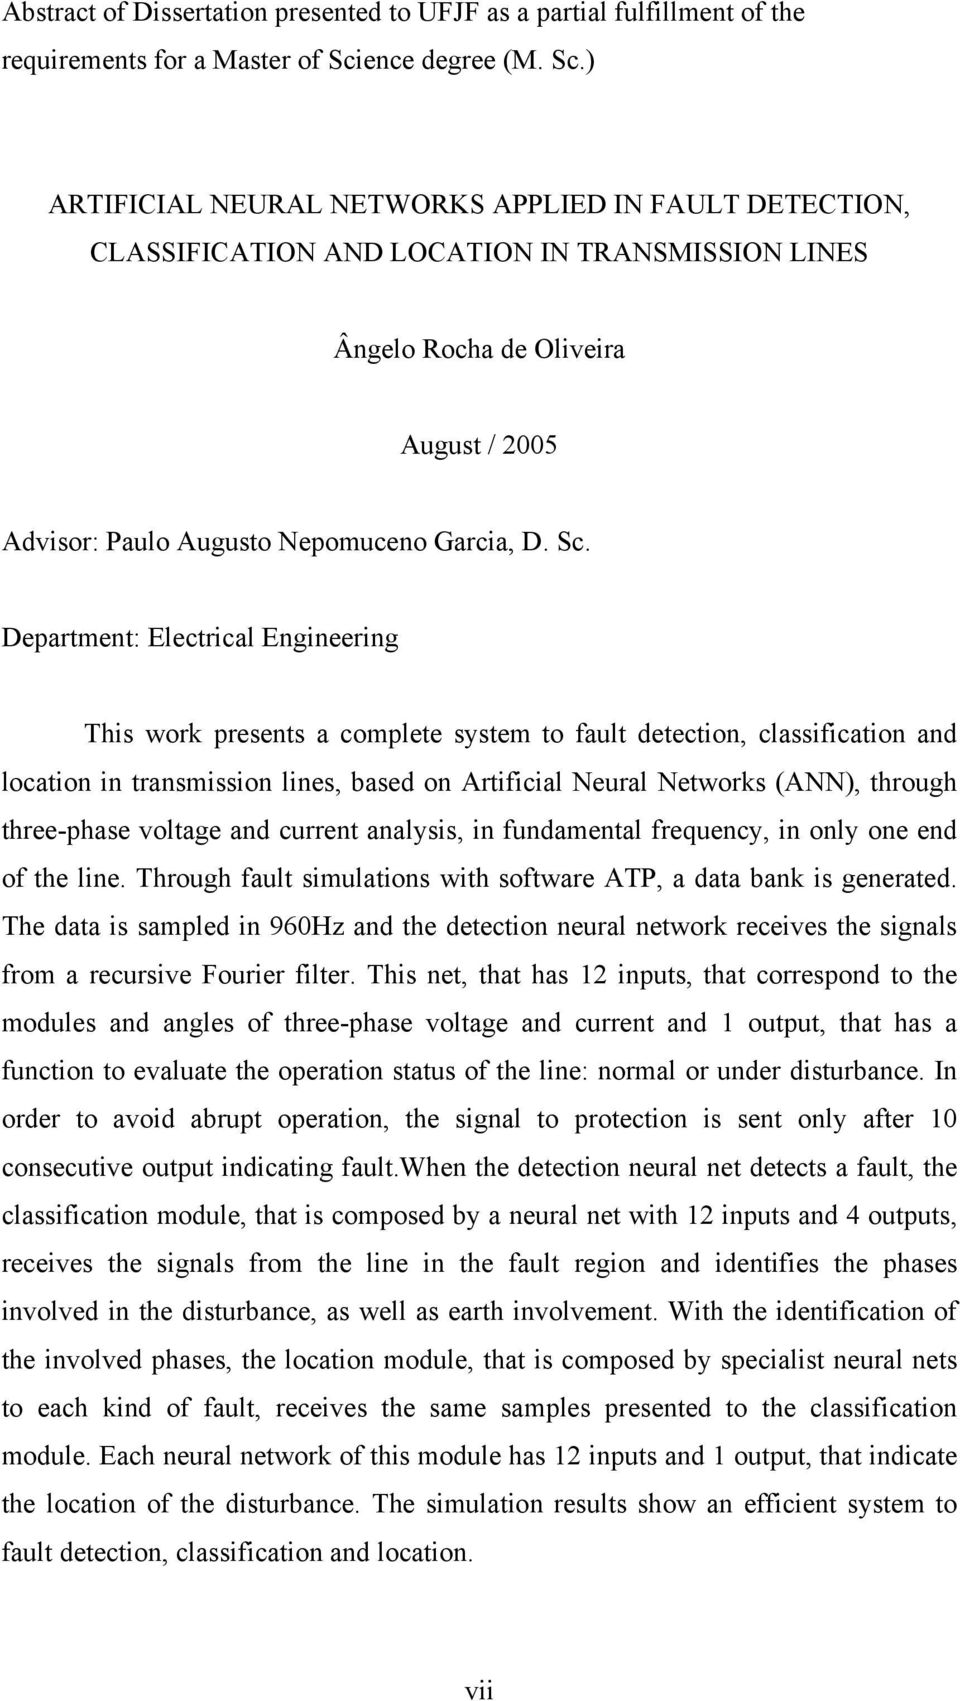 ) ARTIFICIAL NEURAL NETWORKS APPLIED IN FAULT DETECTION, CLASSIFICATION AND LOCATION IN TRANSMISSION LINES Ângelo Rocha de Oliveira August / 2005 Advisor: Paulo Augusto Nepomuceno Garcia, D. Sc.